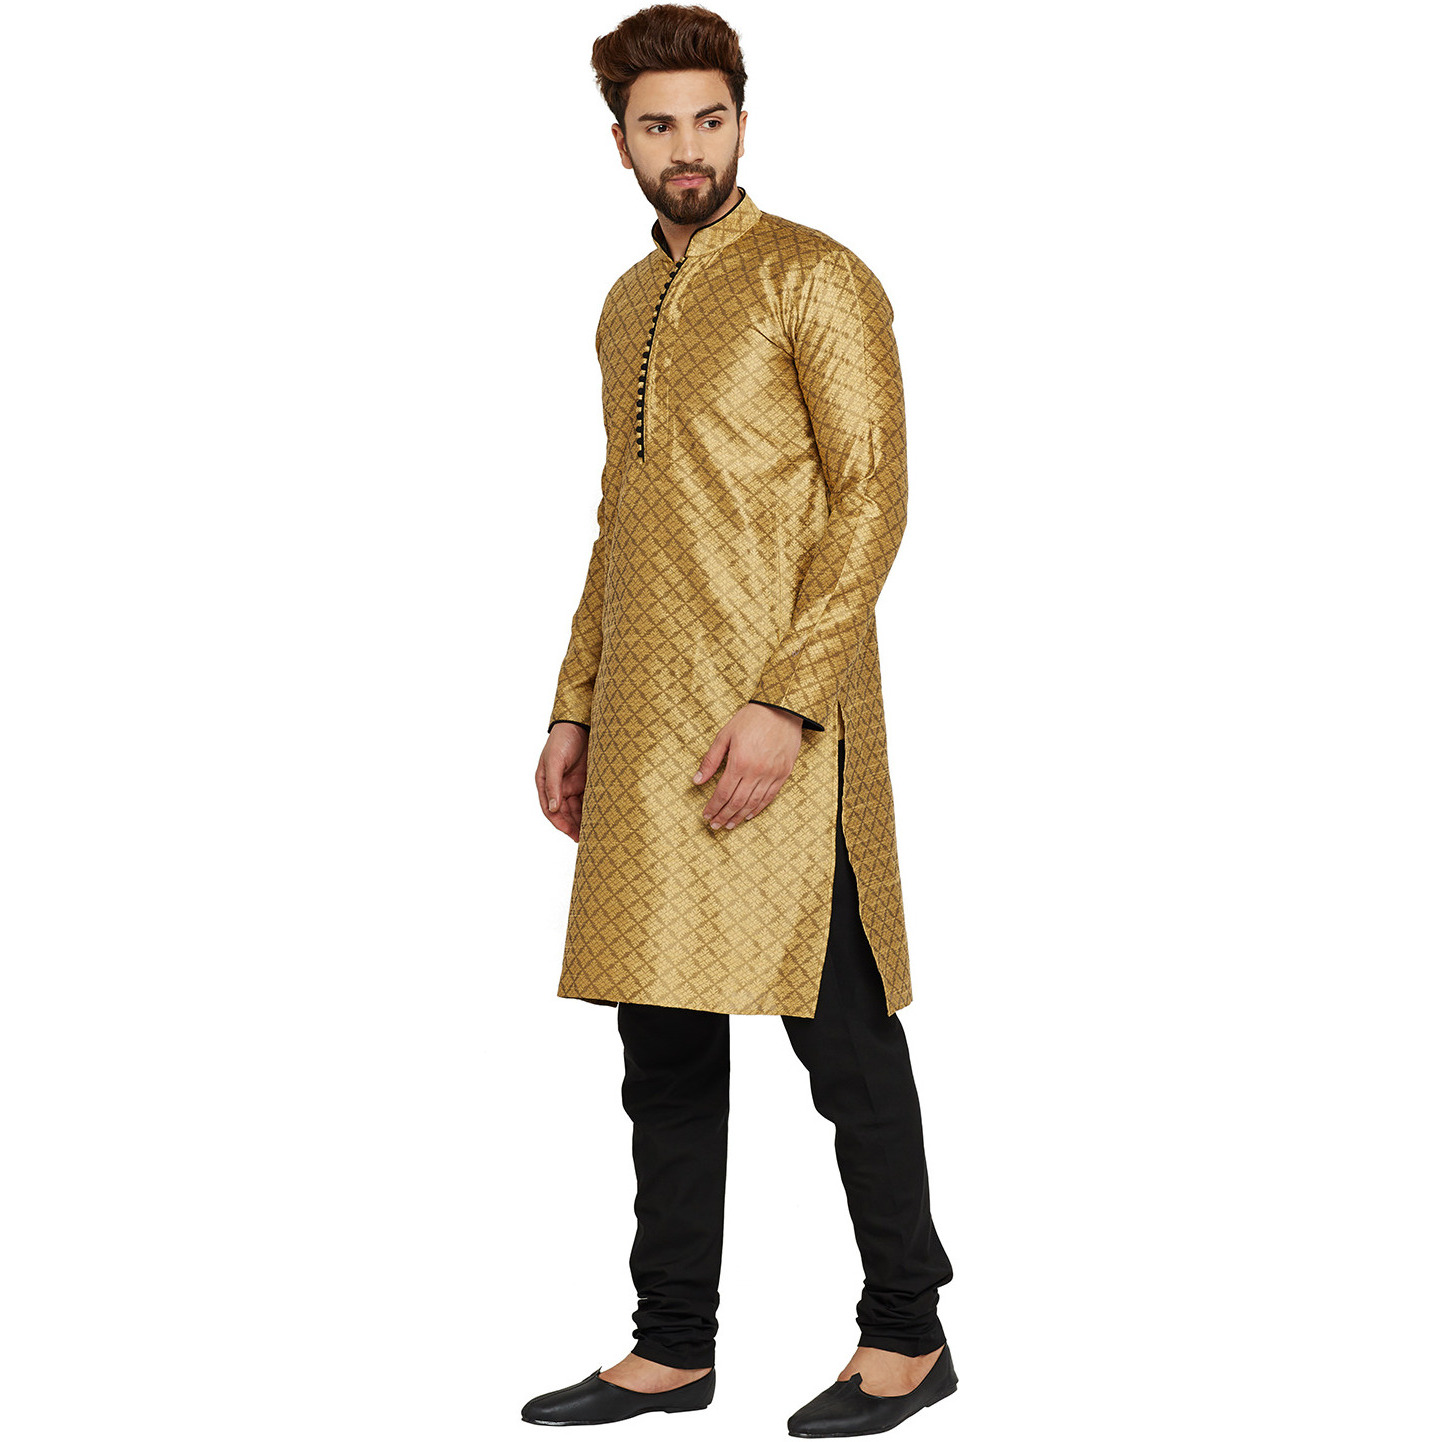 Mens Silk Golden Self design pattern Designer Kurta Churidaar Set Long Sleeve Ban collar Regular Fit